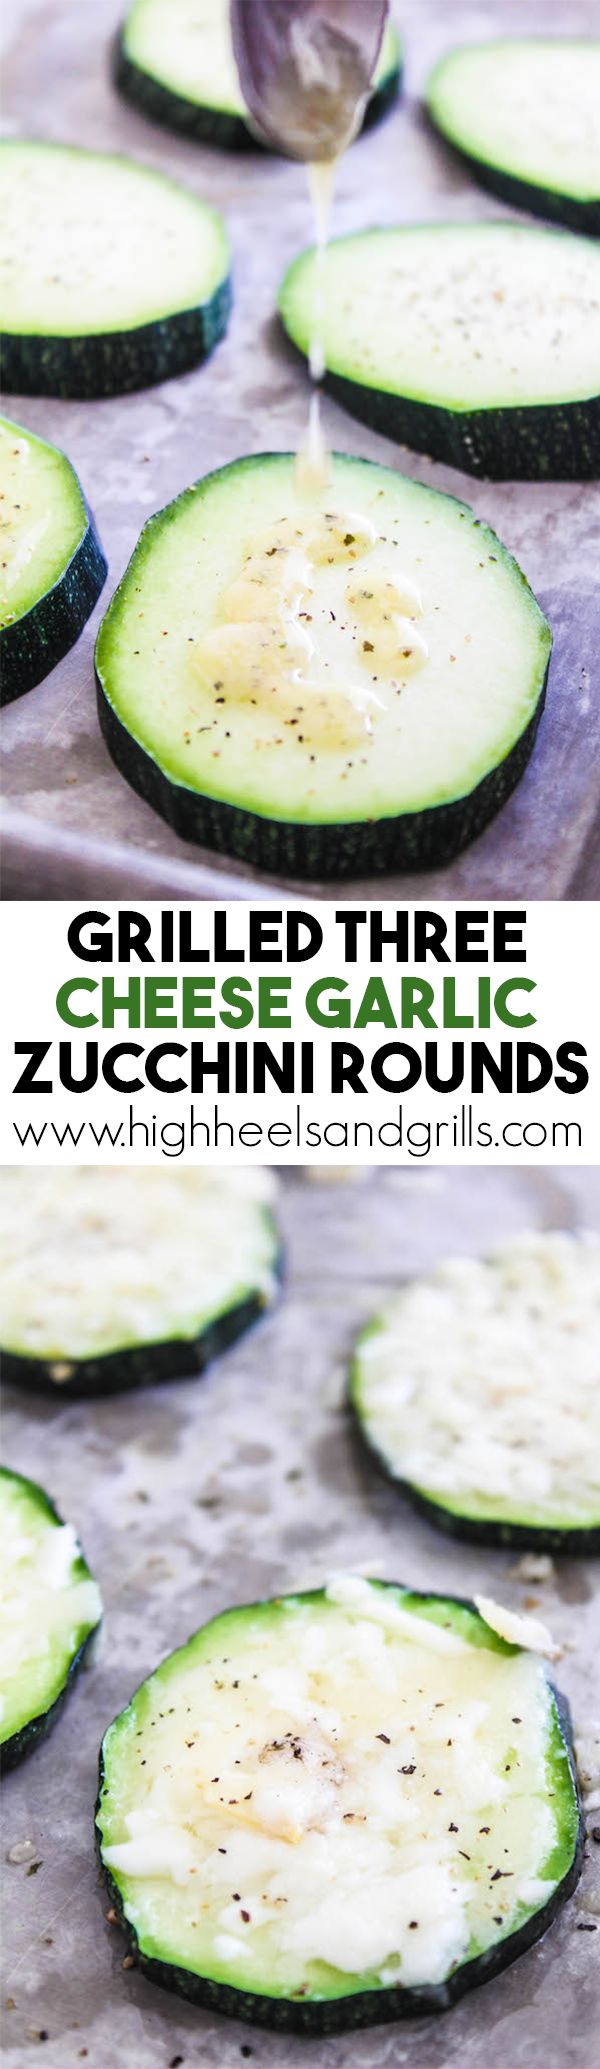 Three Cheese Garlic Zucchini Rounds are the only way to eat zucchini ...